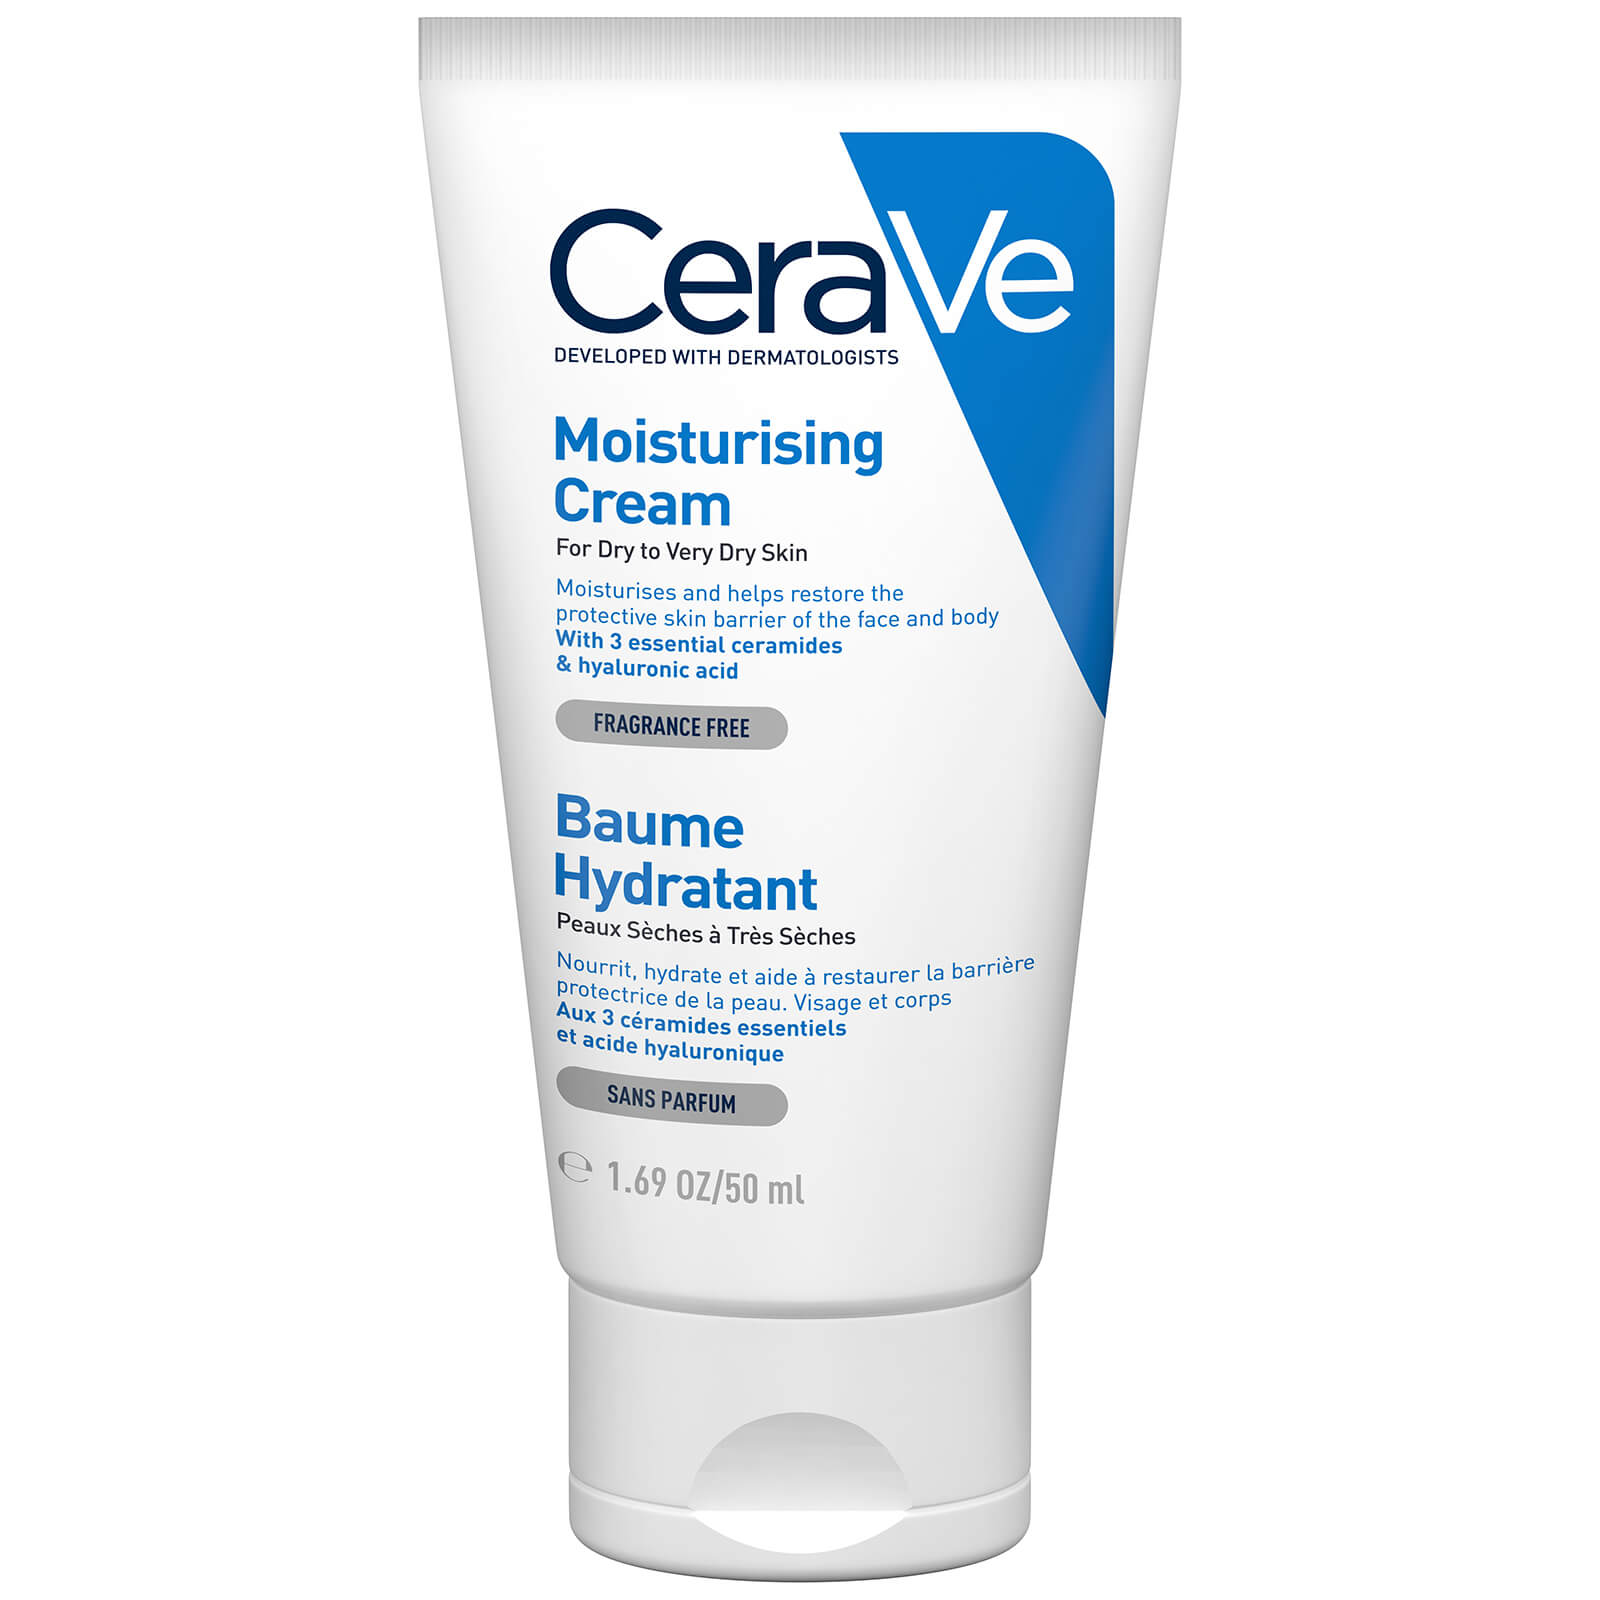 CeraVe Moisturising Cream 50ml | Free Shipping | Lookfantastic